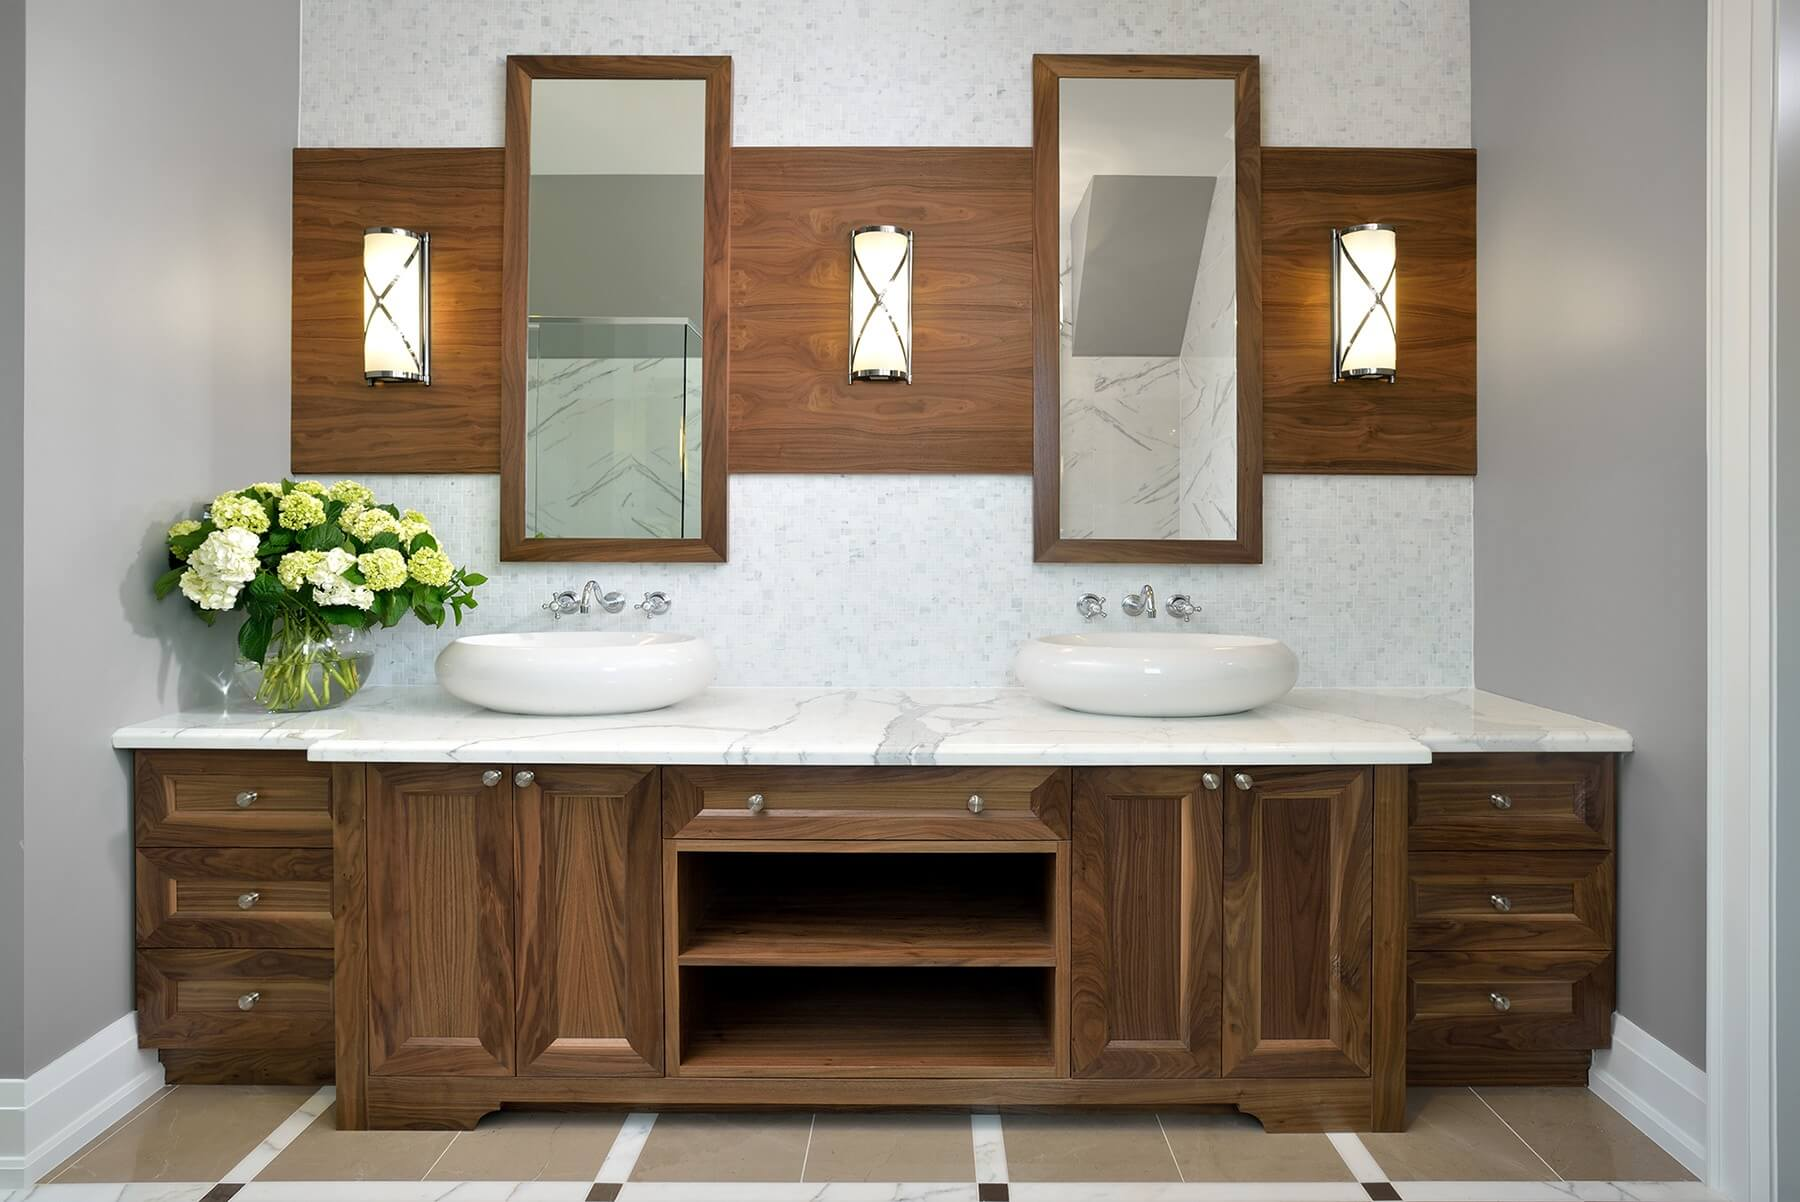 Dual vanity features large white vessel sinks over marble countertop, with a pair of individual mirrors hung on sleek wall mounted wood paneling.